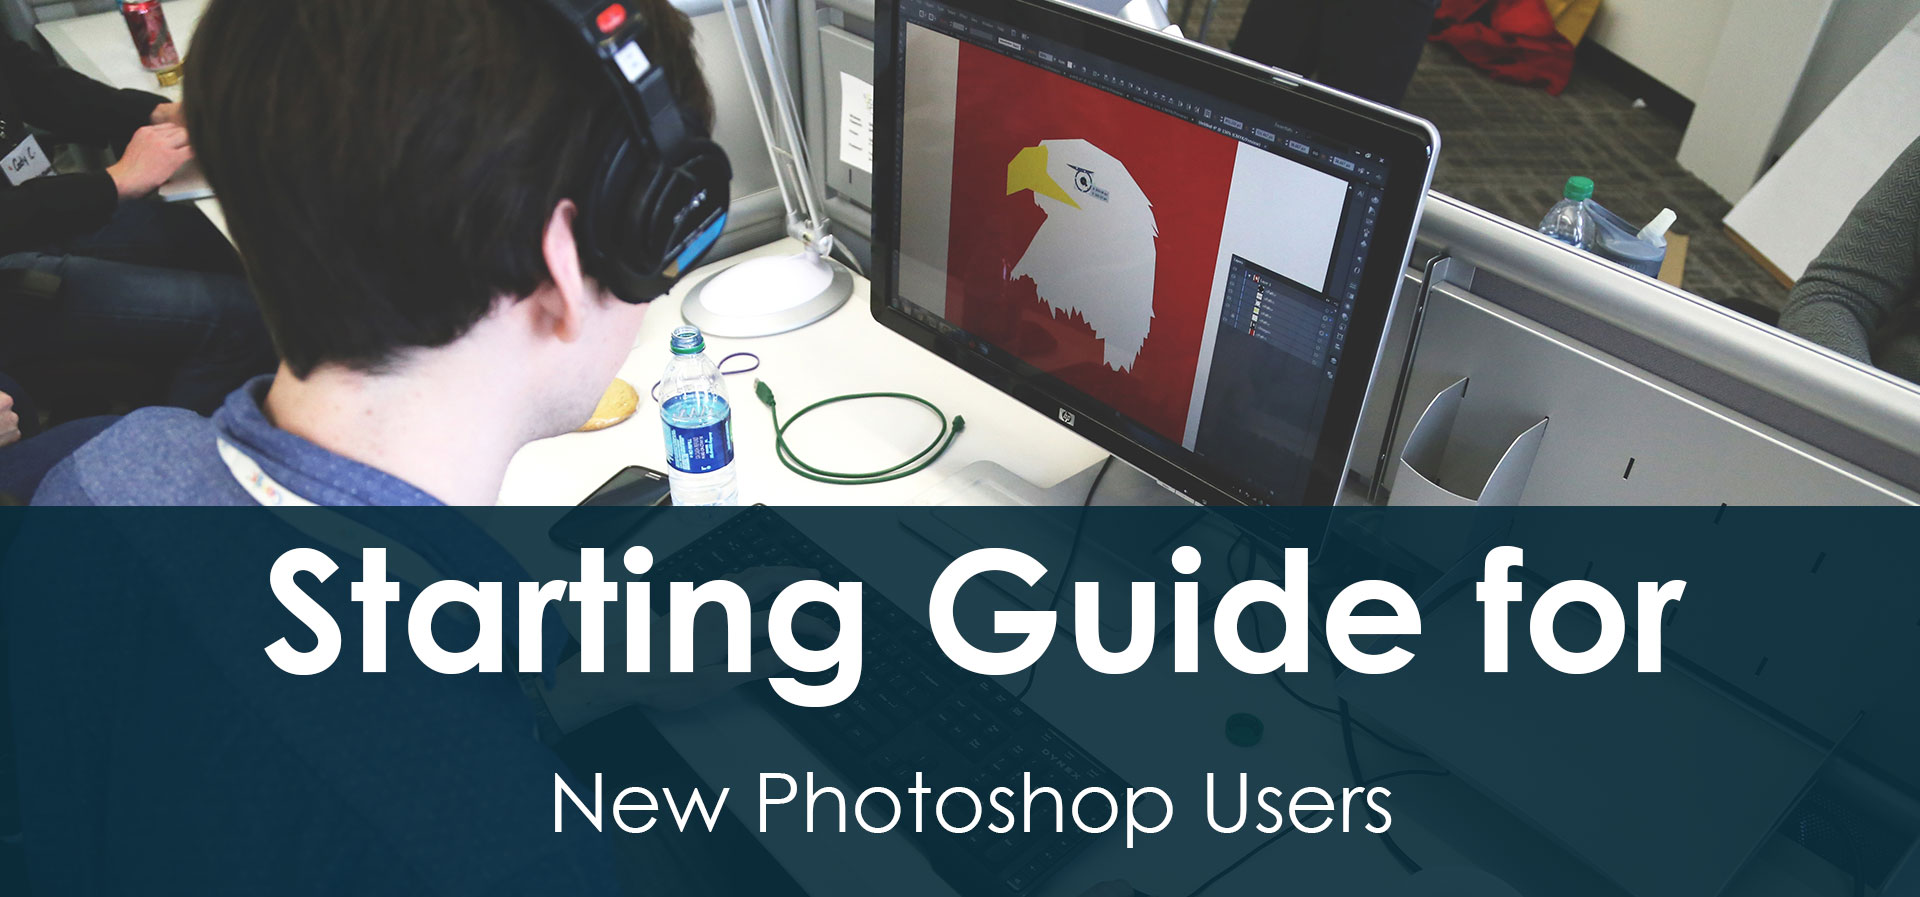 Starting-Guide-for-New-Photoshop-Users